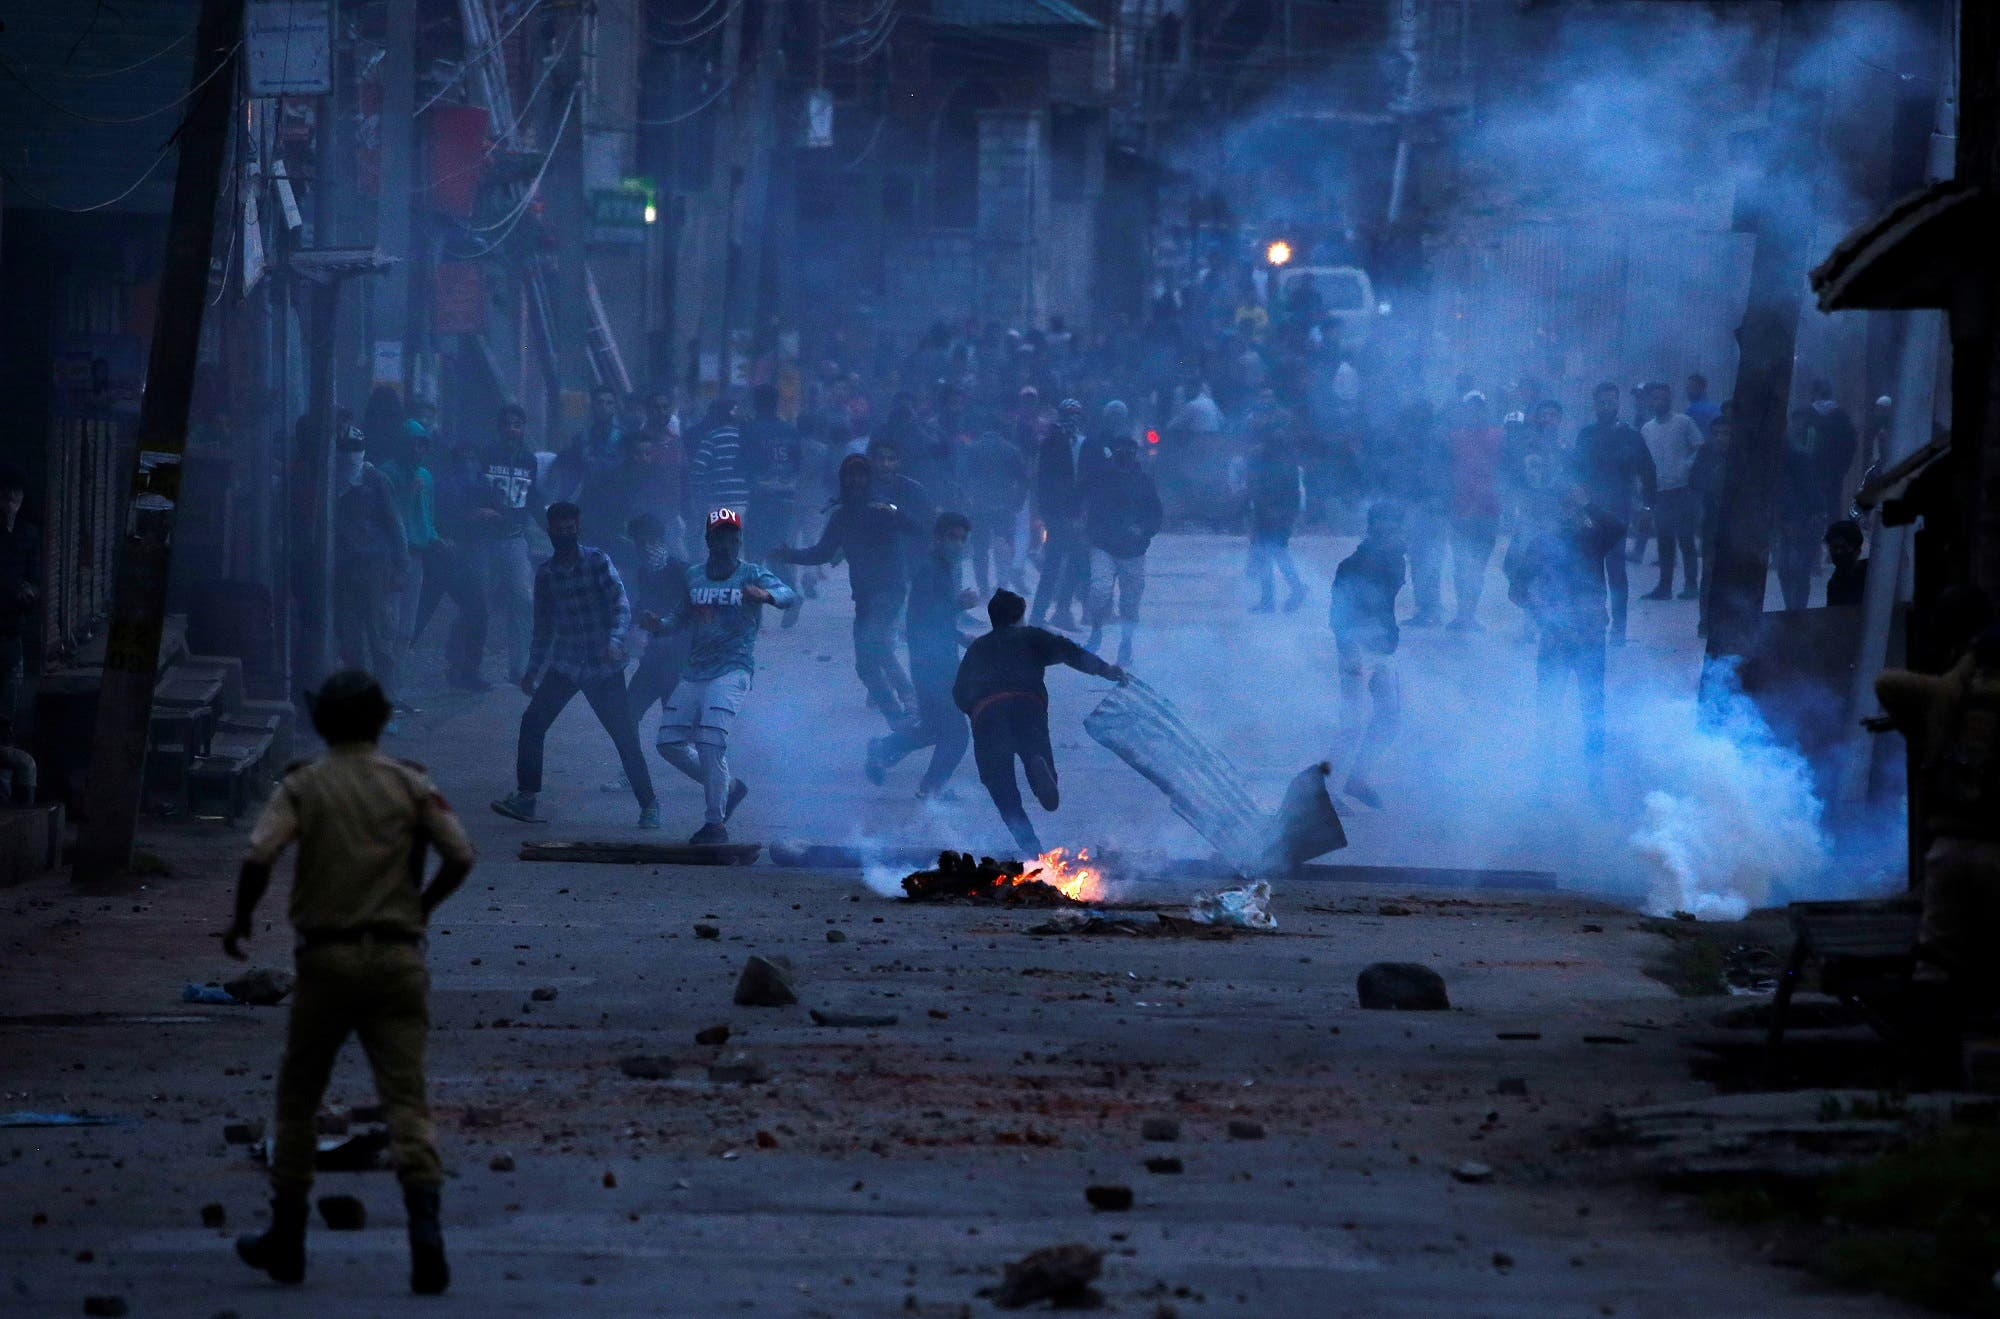 Demonstrators throw stones towards the Indian police during a protest against the recent killings in Kashmir, in Srinagar, on May 8, 2018. (Reuters)